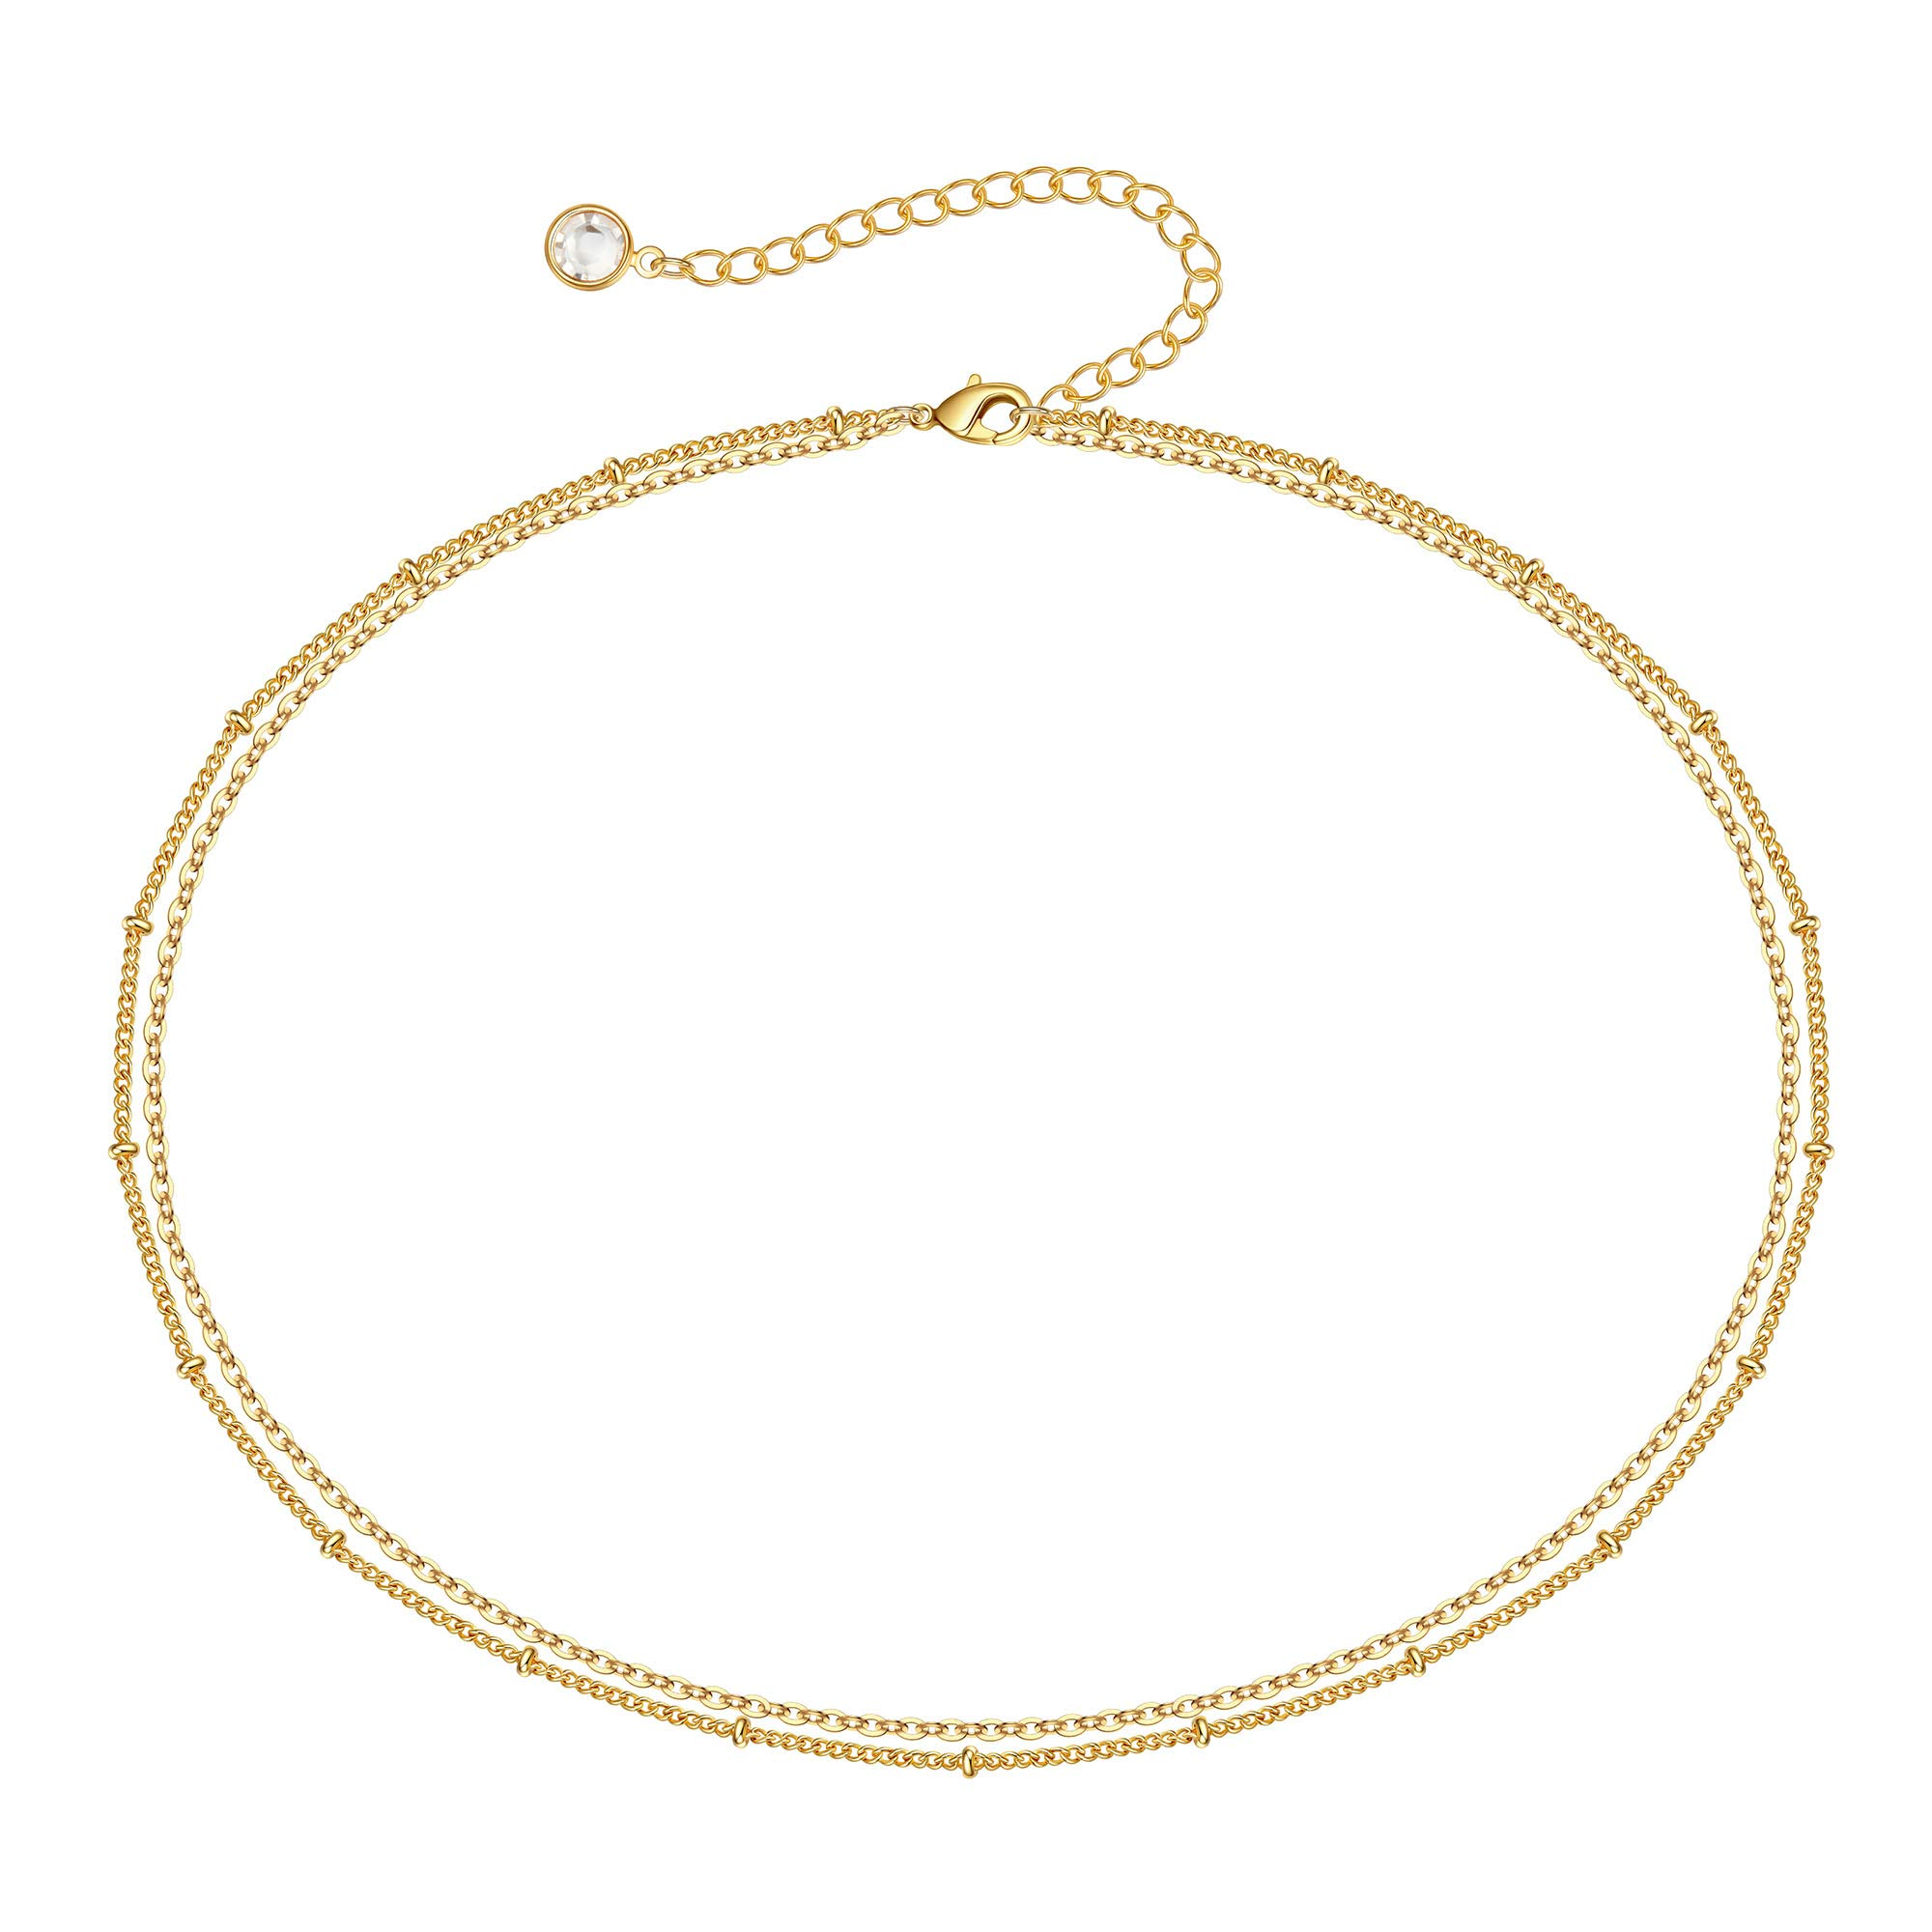 Choker Necklaces for Women, Dainty 14K Gold Plated Layered Star Butterfly Choker Necklace, Simple Cute Beaded Snake Chain Link Choker Necklace Womens Small Short Necklaces Jewelry for Teen Girls